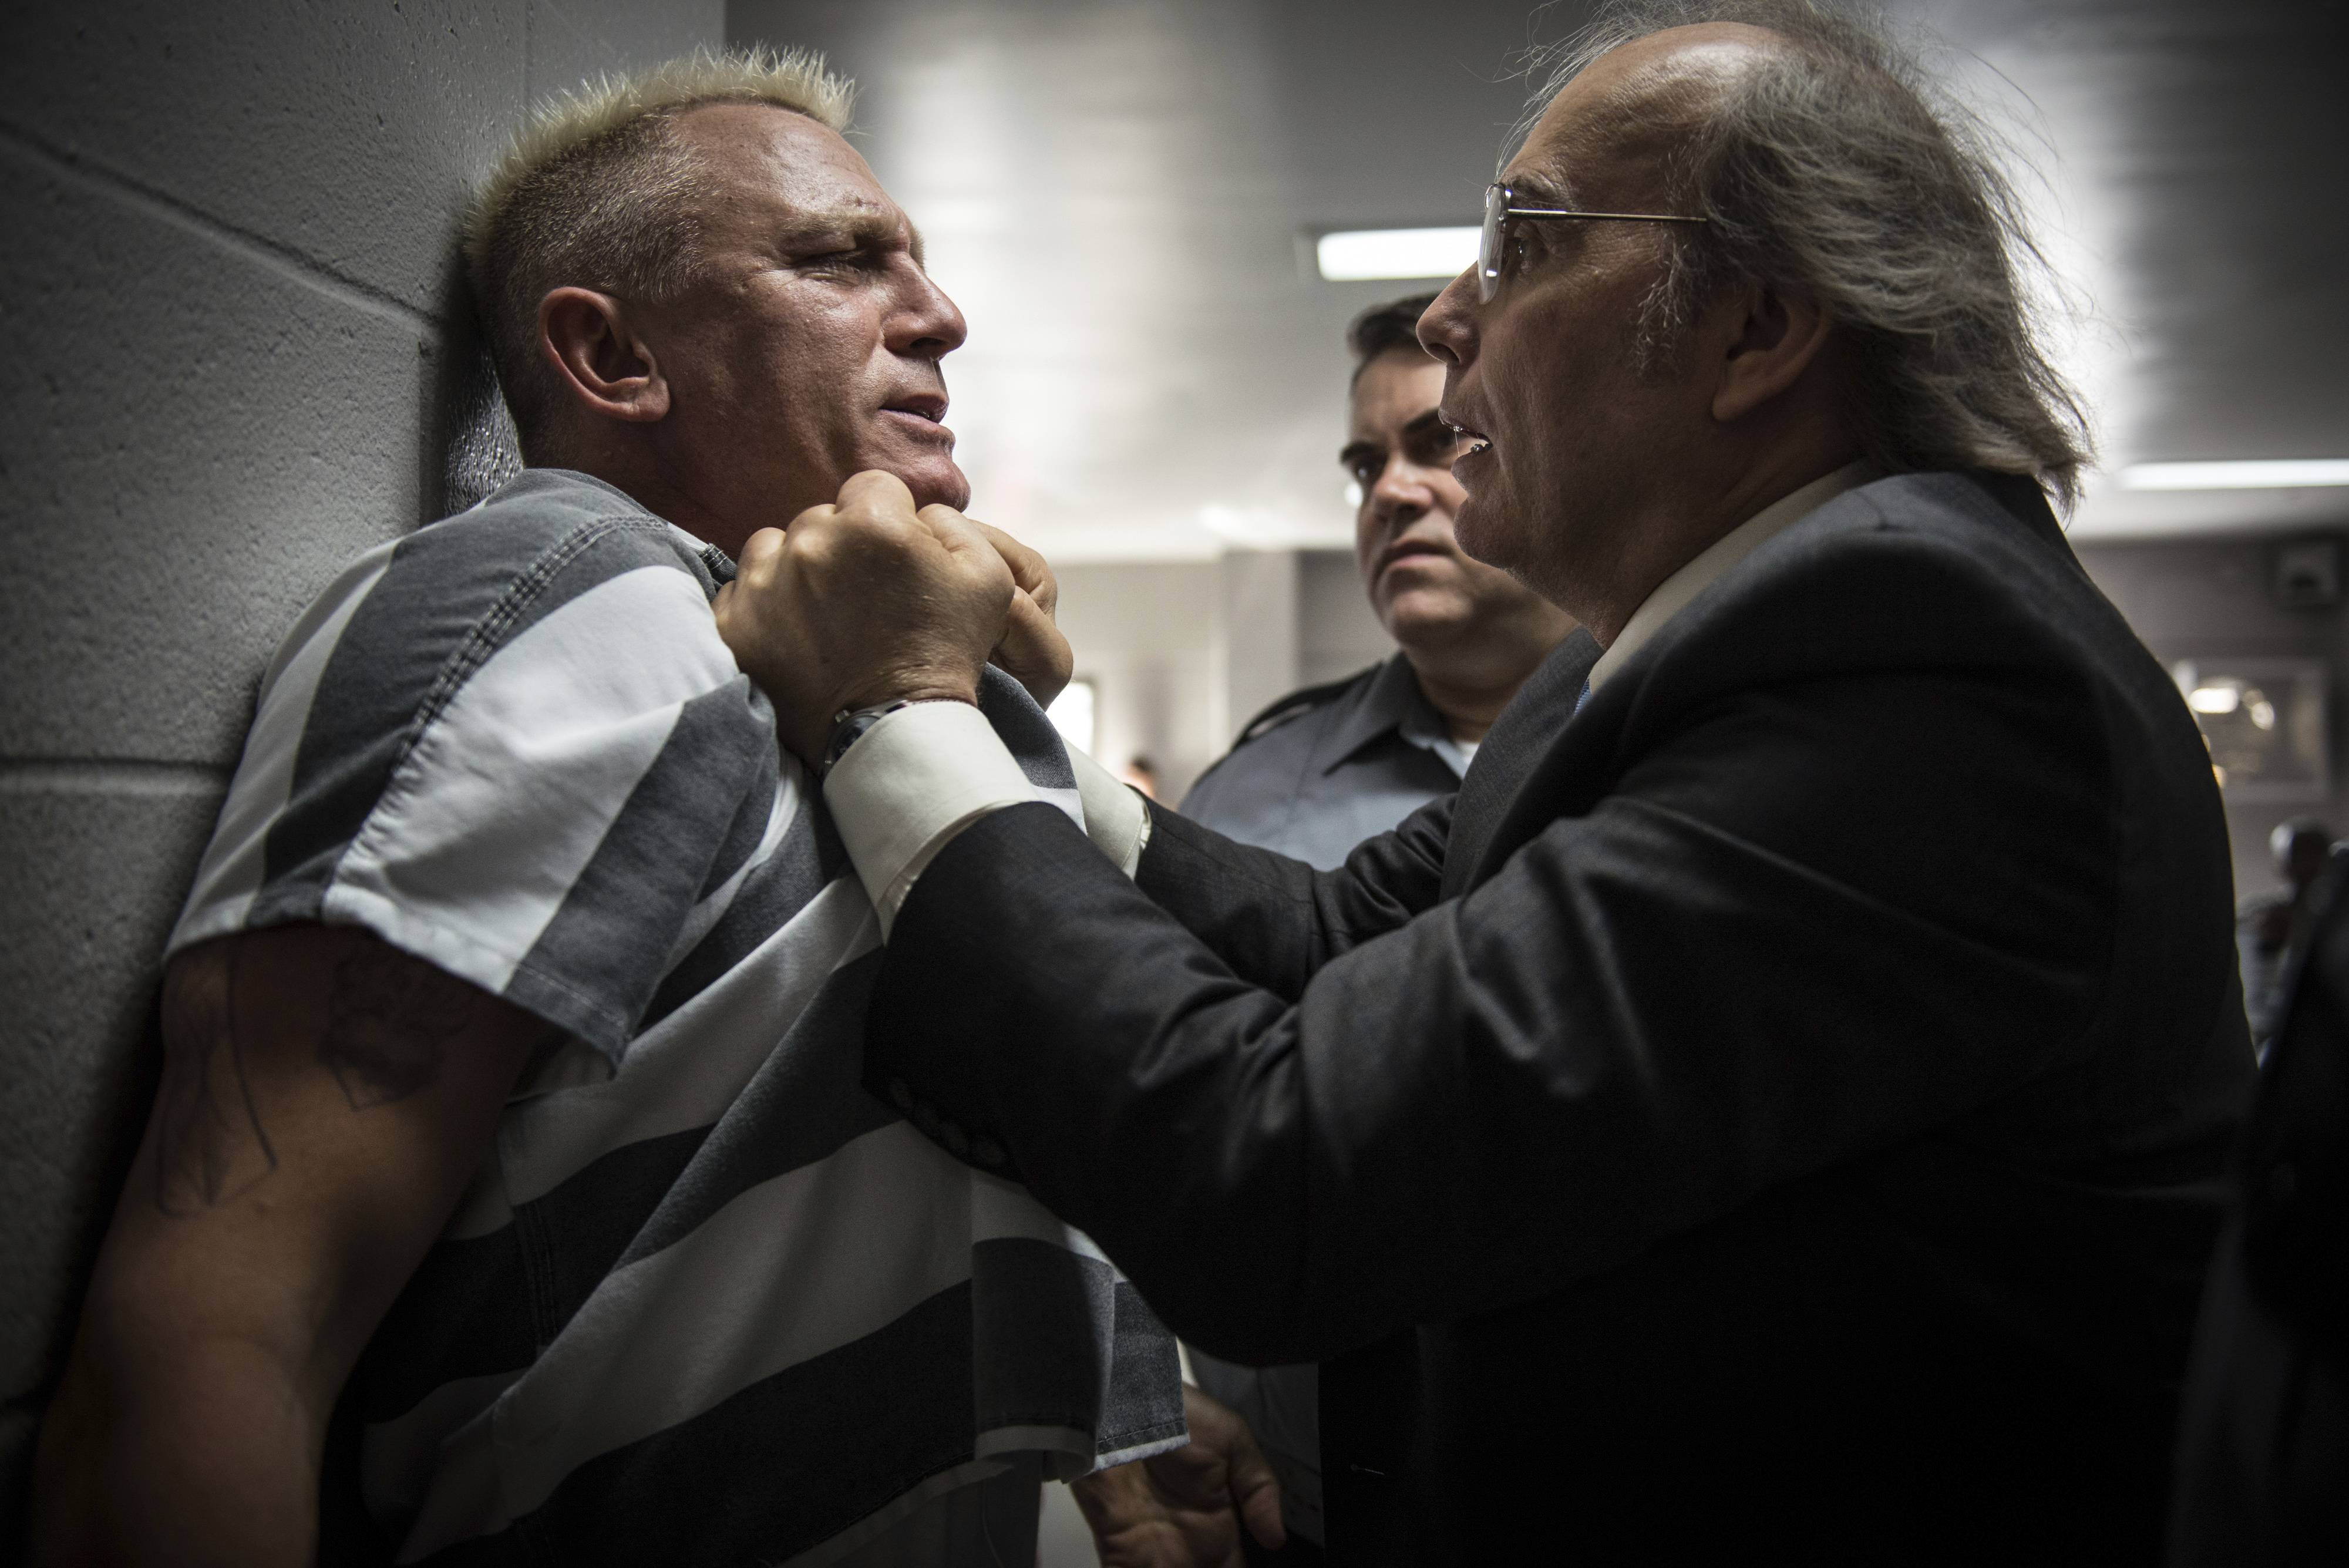 "Incarcerated bank vault robber Joe Bang (Daniel Craig) gets roughed up by a lying warden (Dwight Yoakam) in Steven Soderbergh's engaging comic caper tale ""Logan Lucky."""